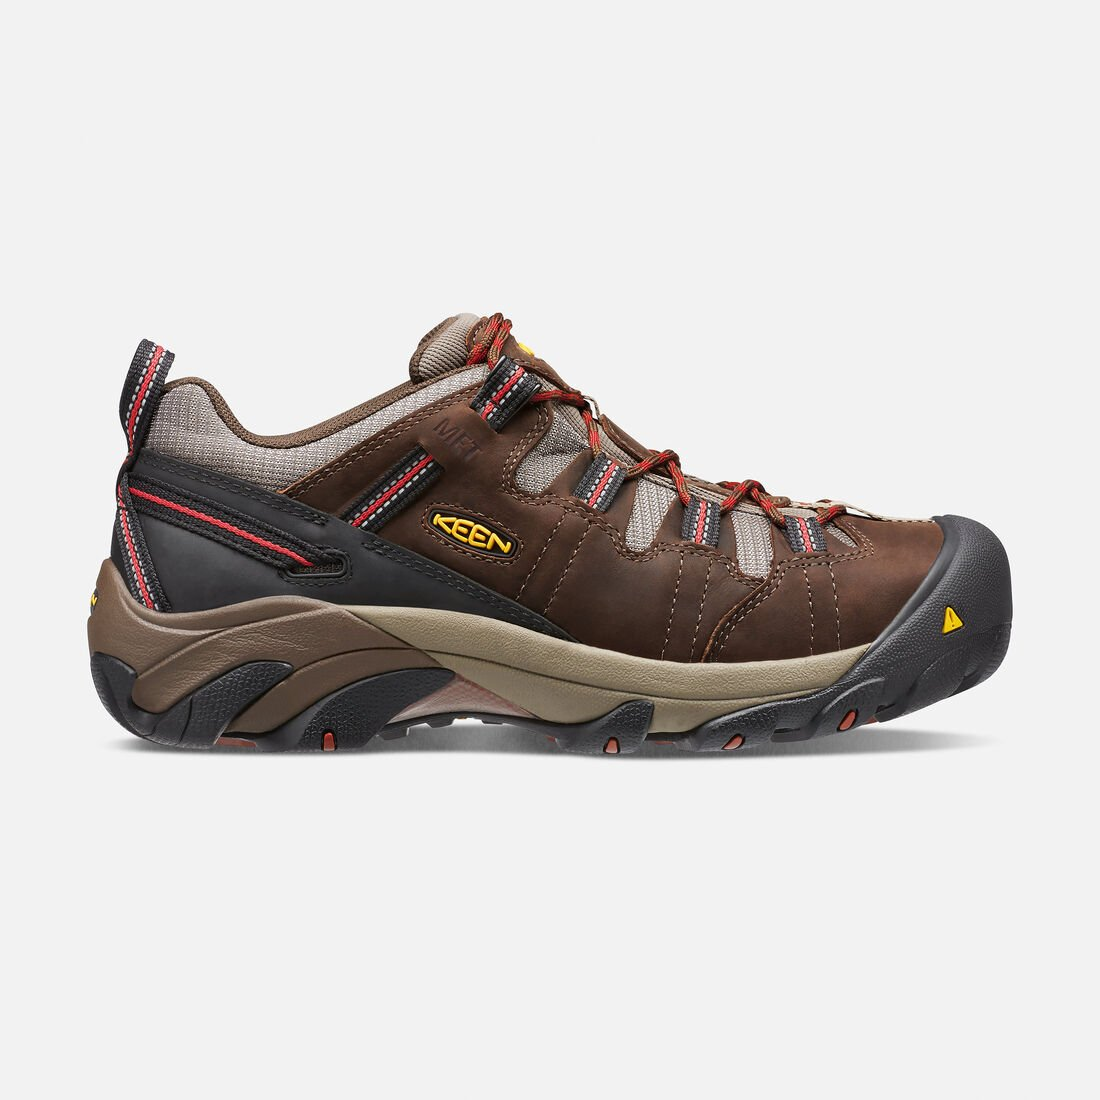 Men's DETROIT LOW INTERNAL MET (Steel Toe) in Cascade Brown/Bossa Nova - large view.